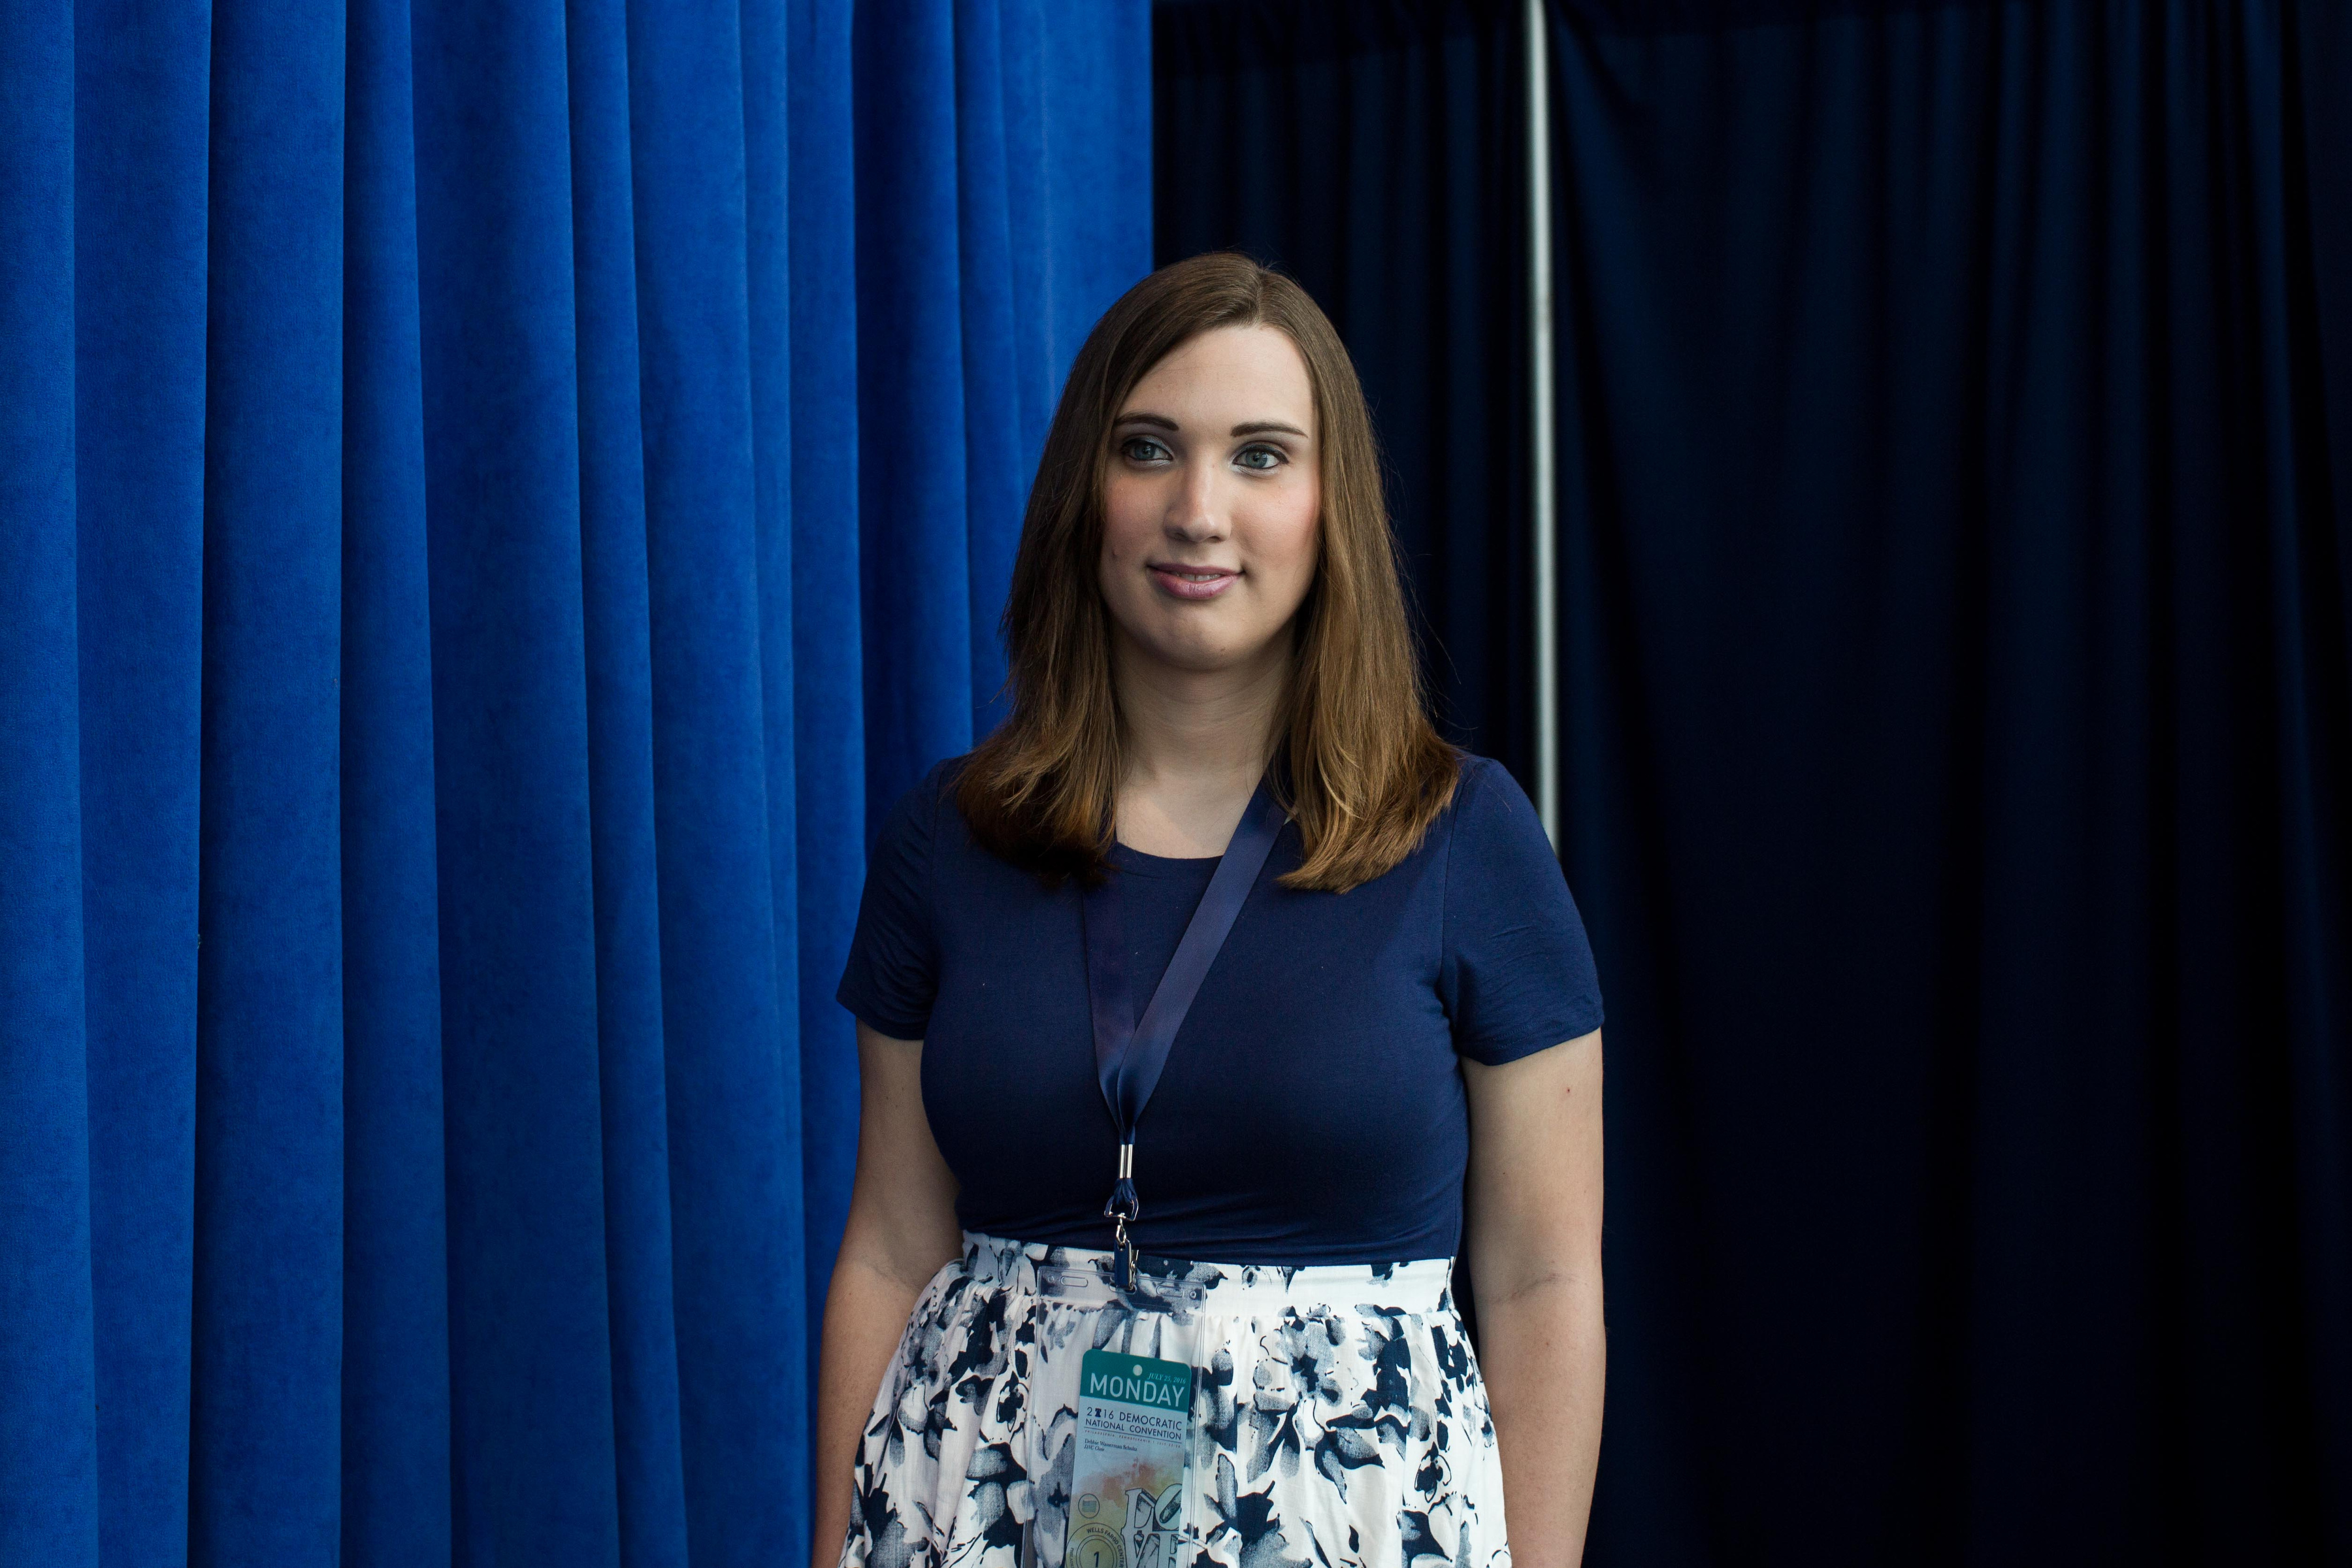 Sarah McBride posed for a portrait at the Wells Fargo Center where she is attending Democratic National Convention on July 25, 2016 in Philadelphia.